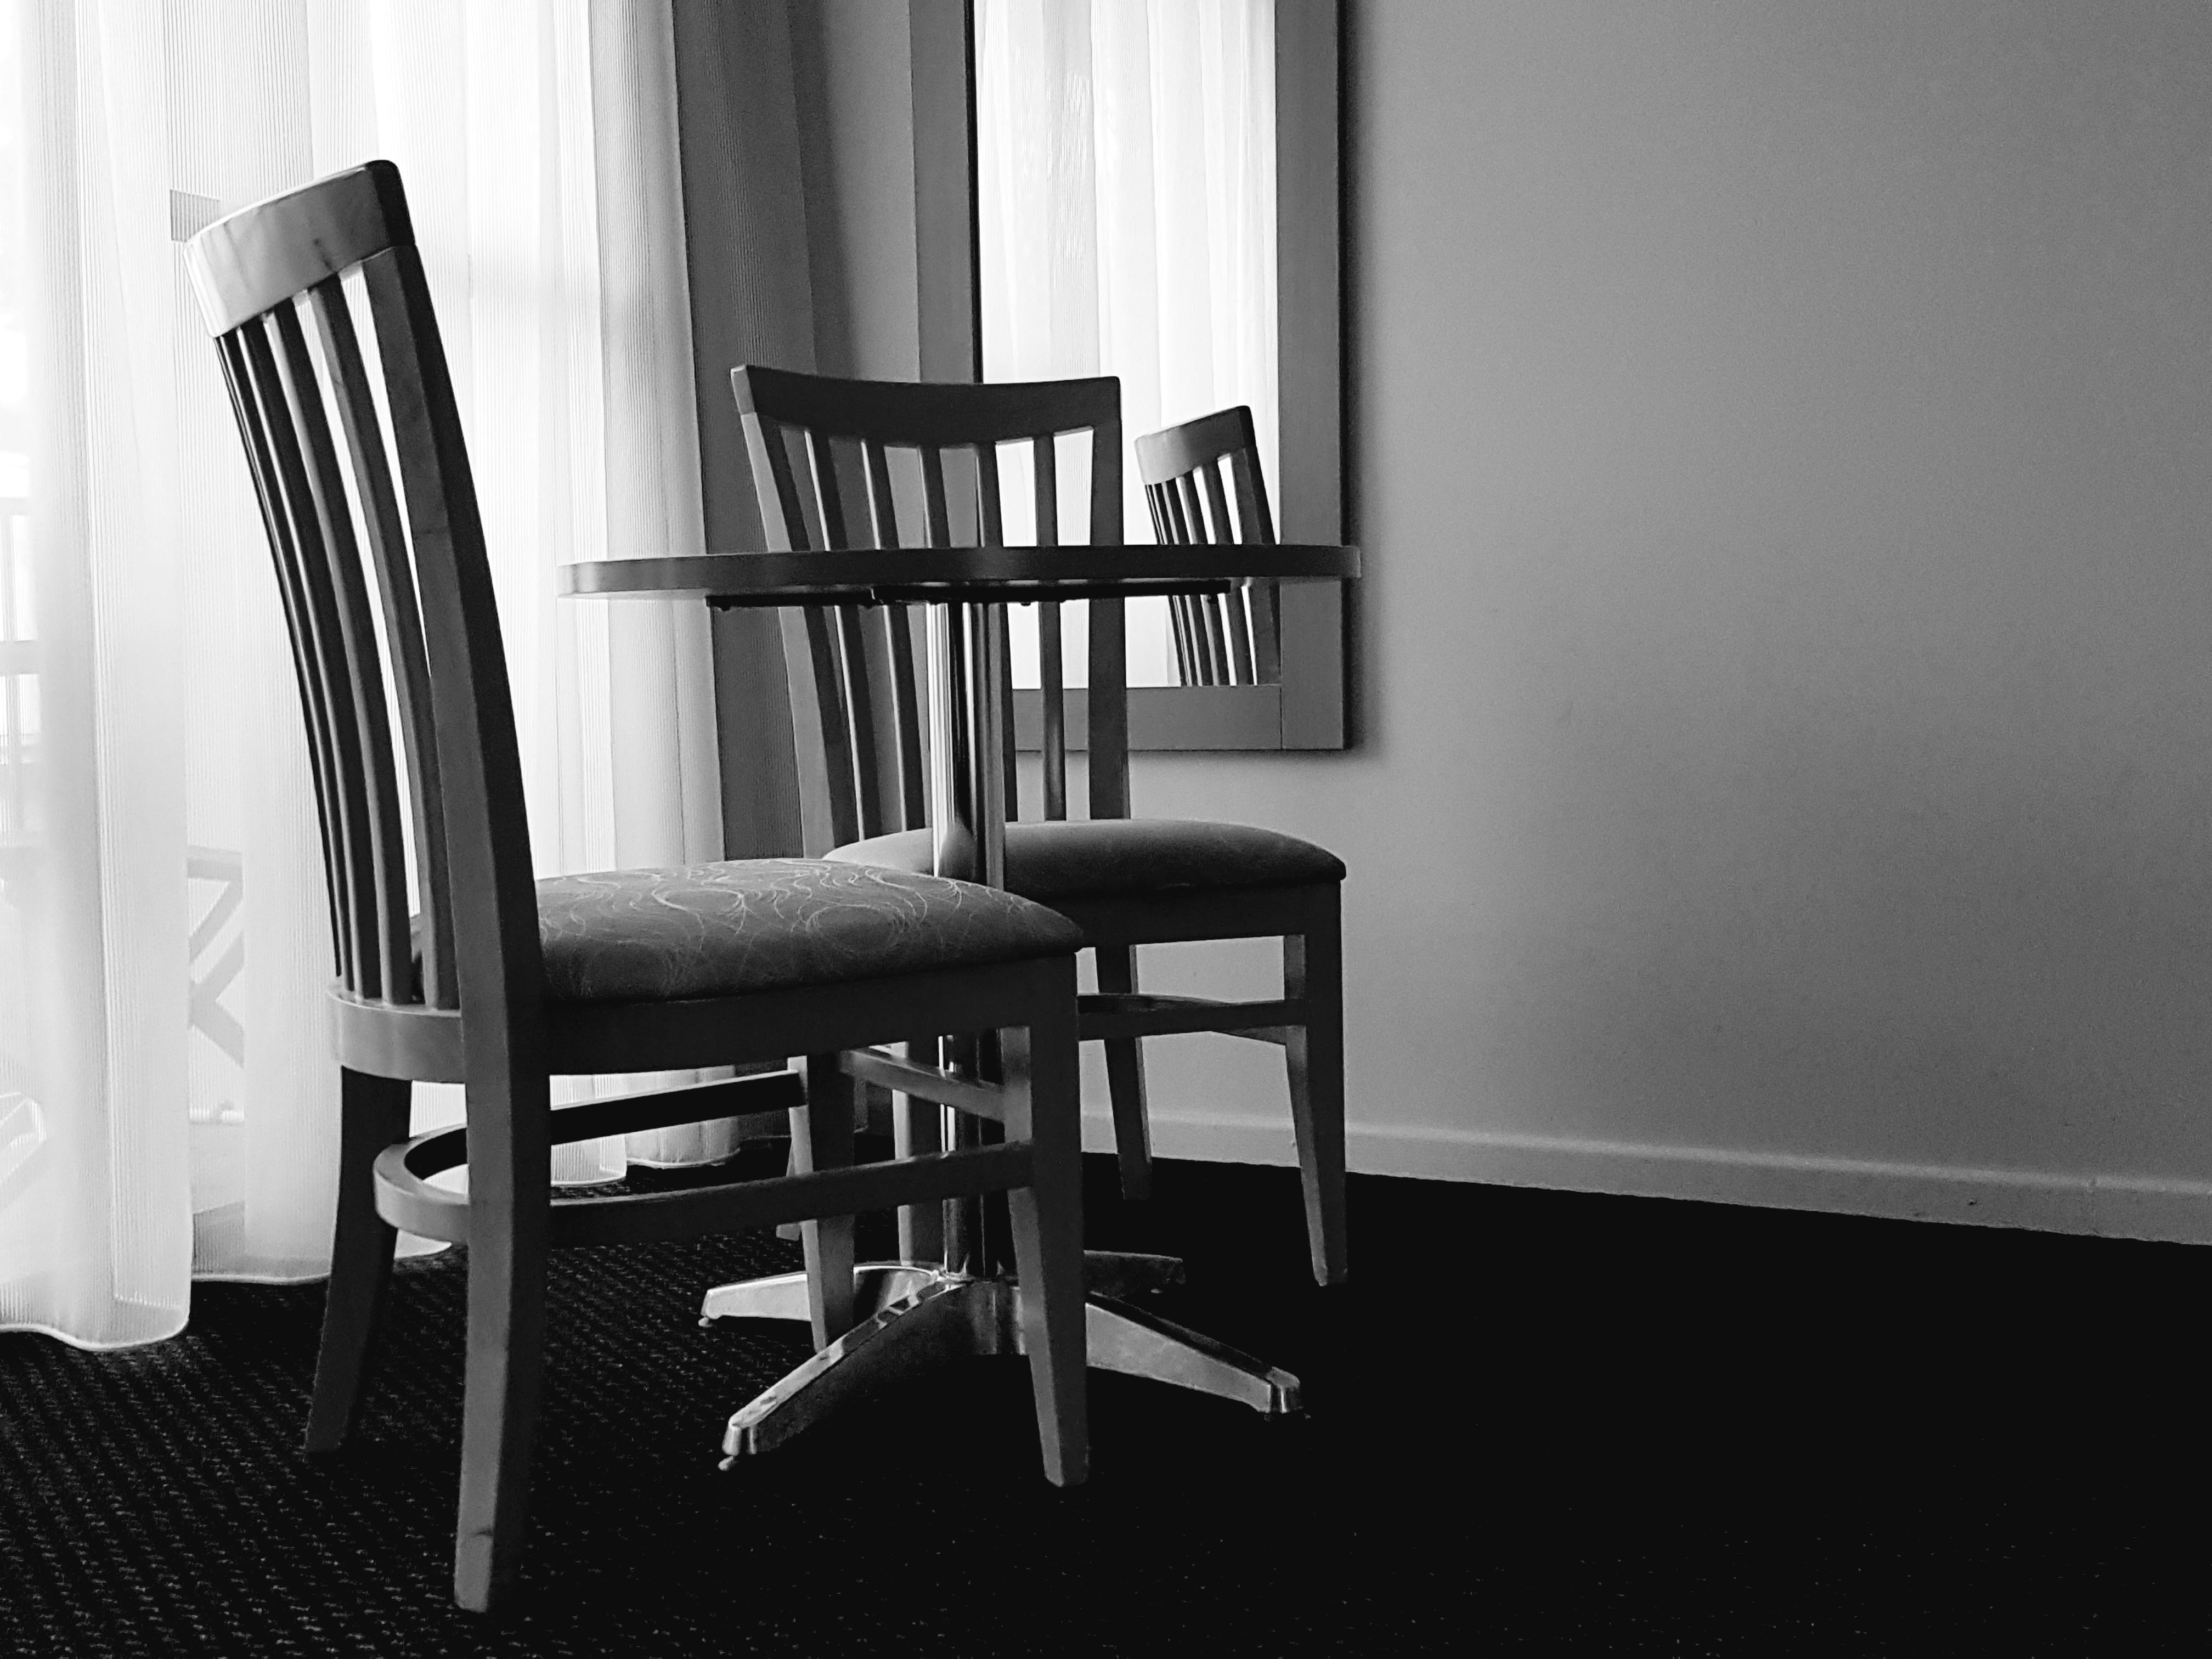 Free stock photo of black and white, chairs, curtains, dinner table